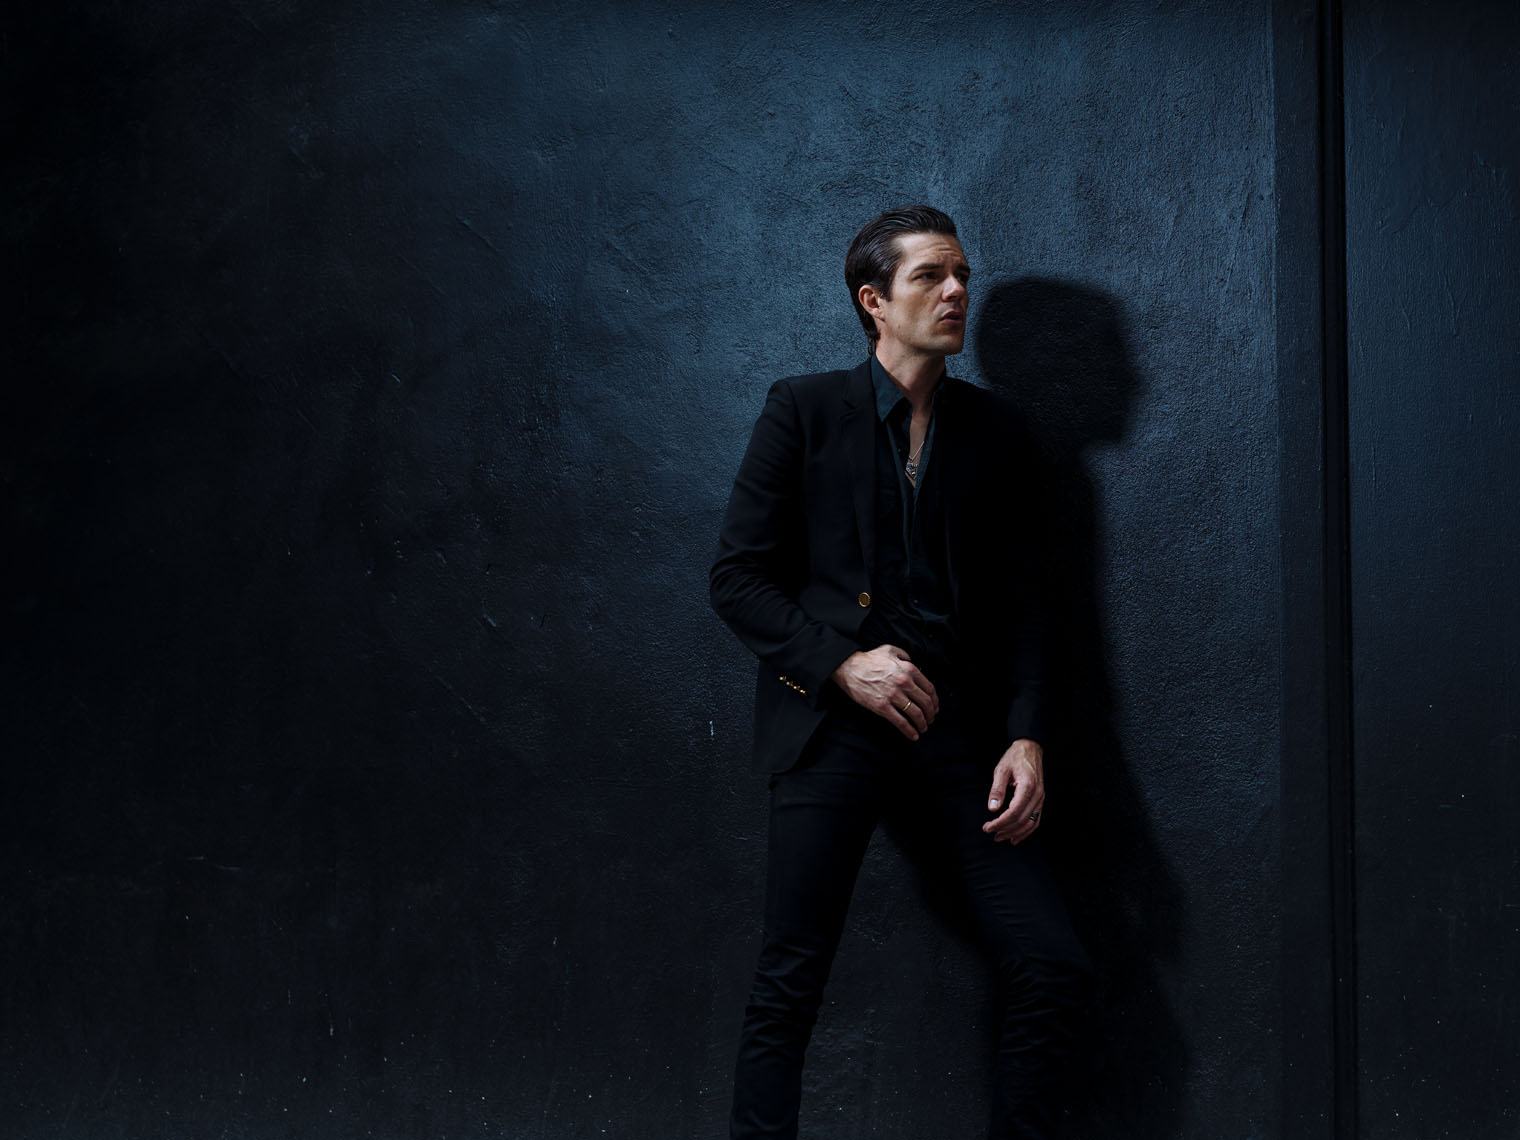 Brandon Flowers of The Killers, editorial